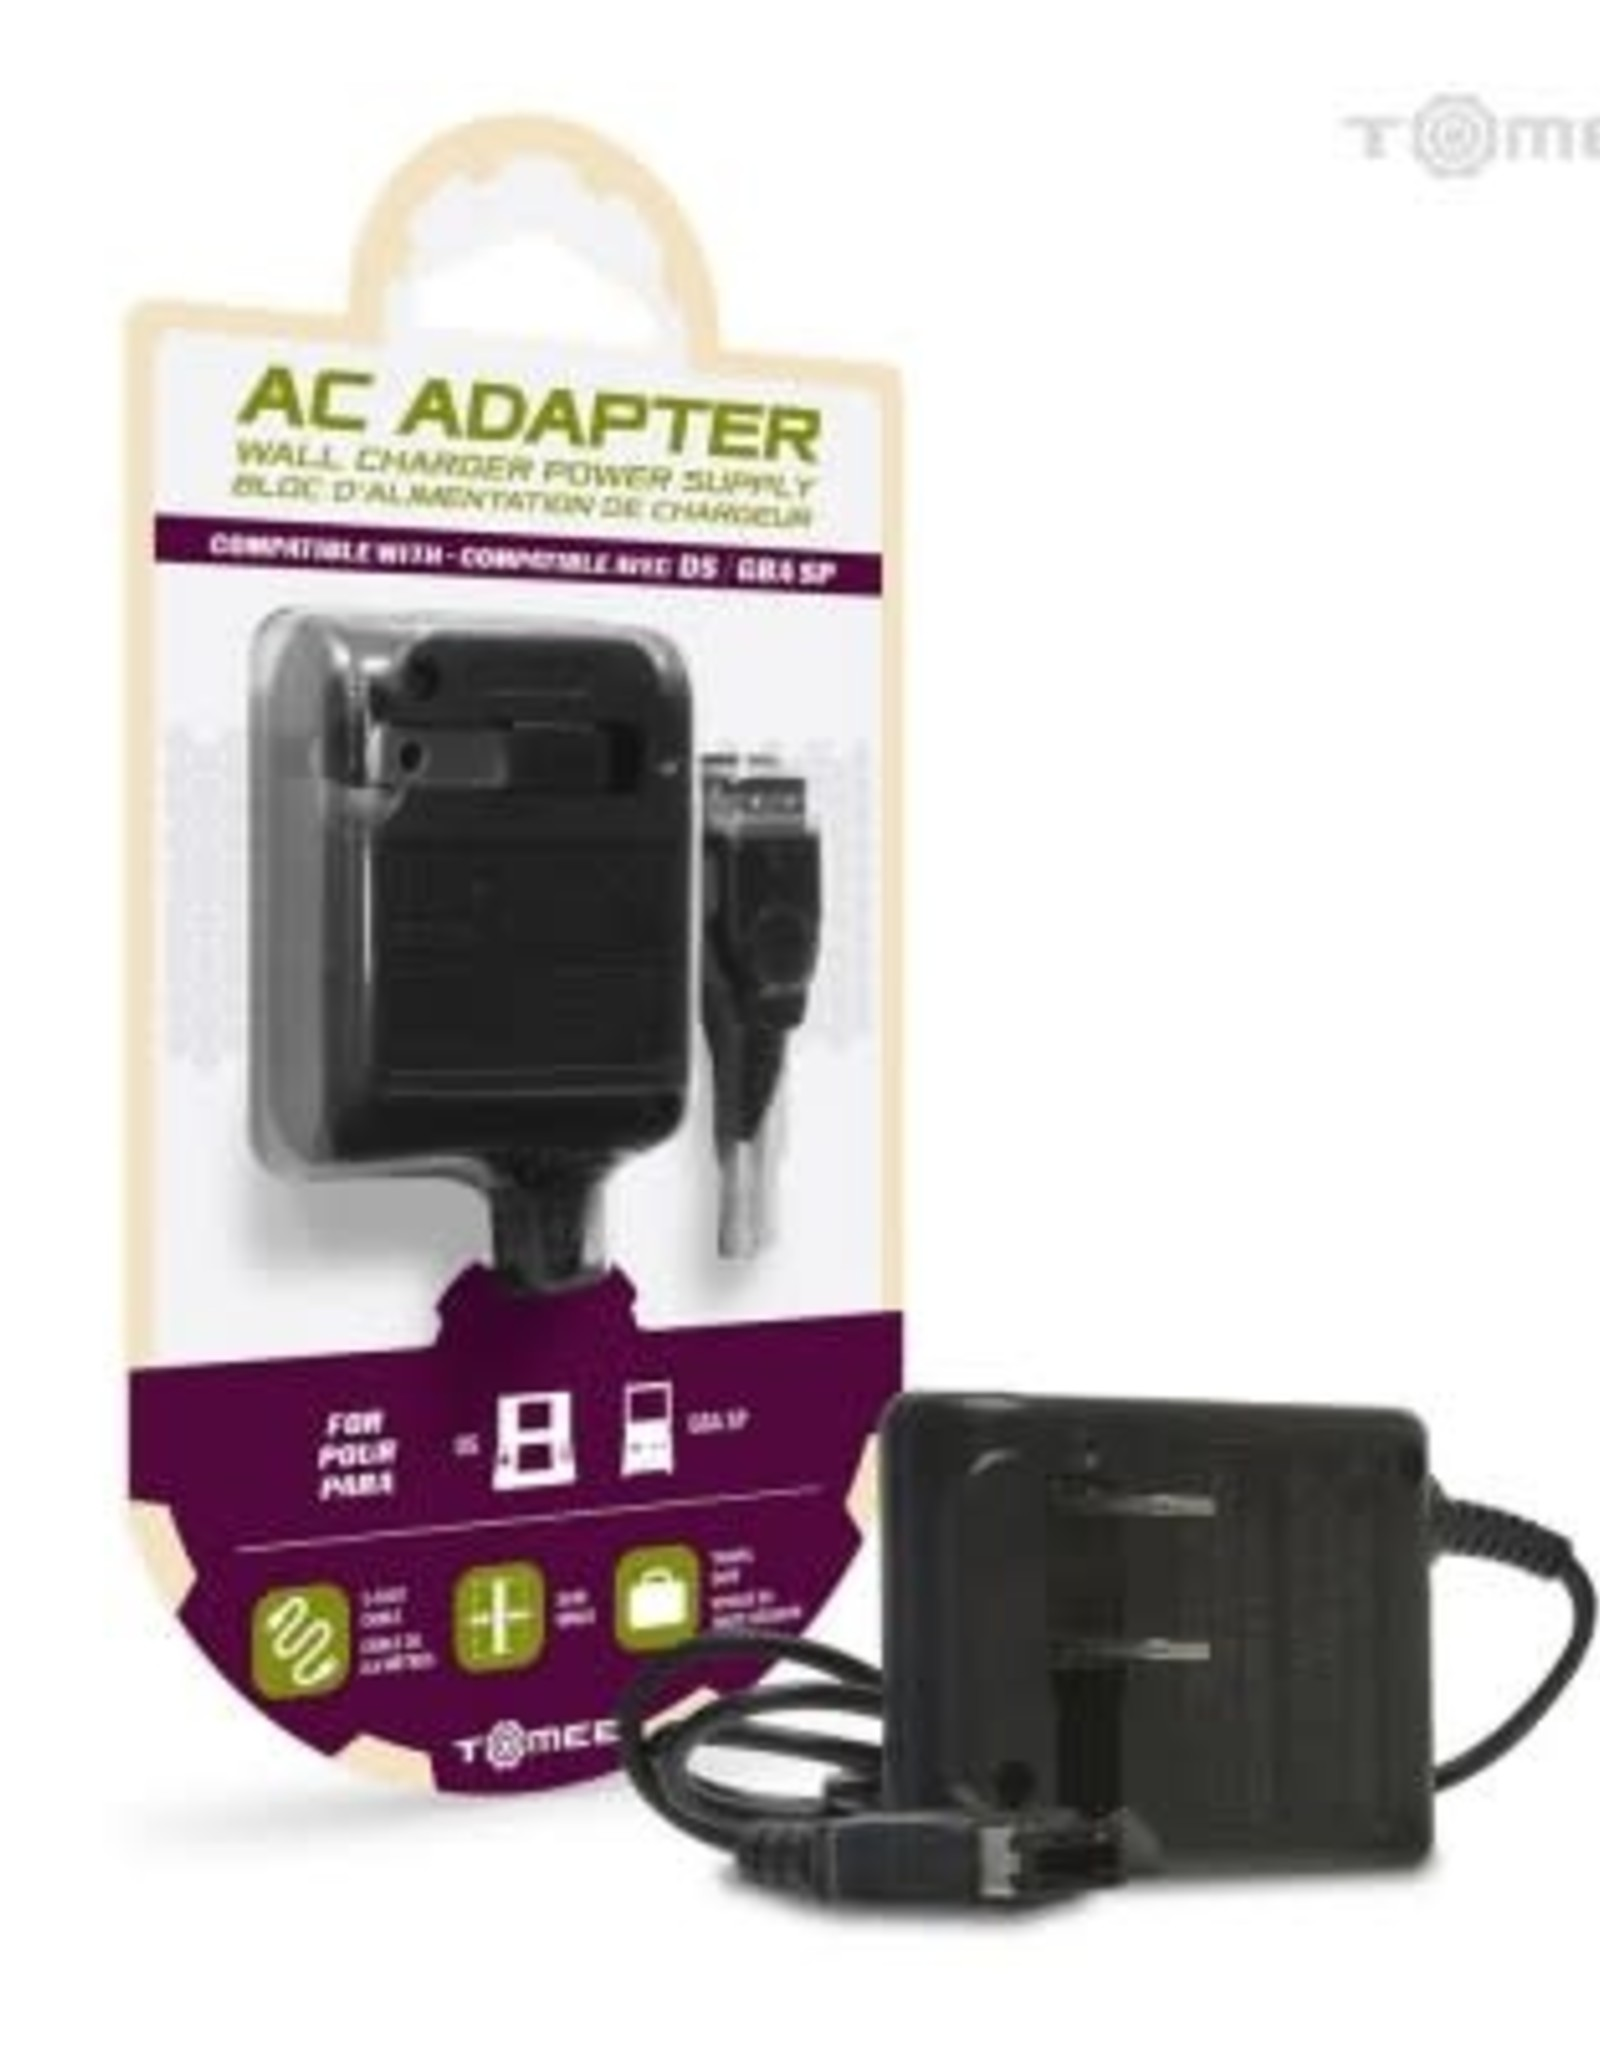 Tomee AC Adapter for Nintendo DS/ Game Boy Advance SP